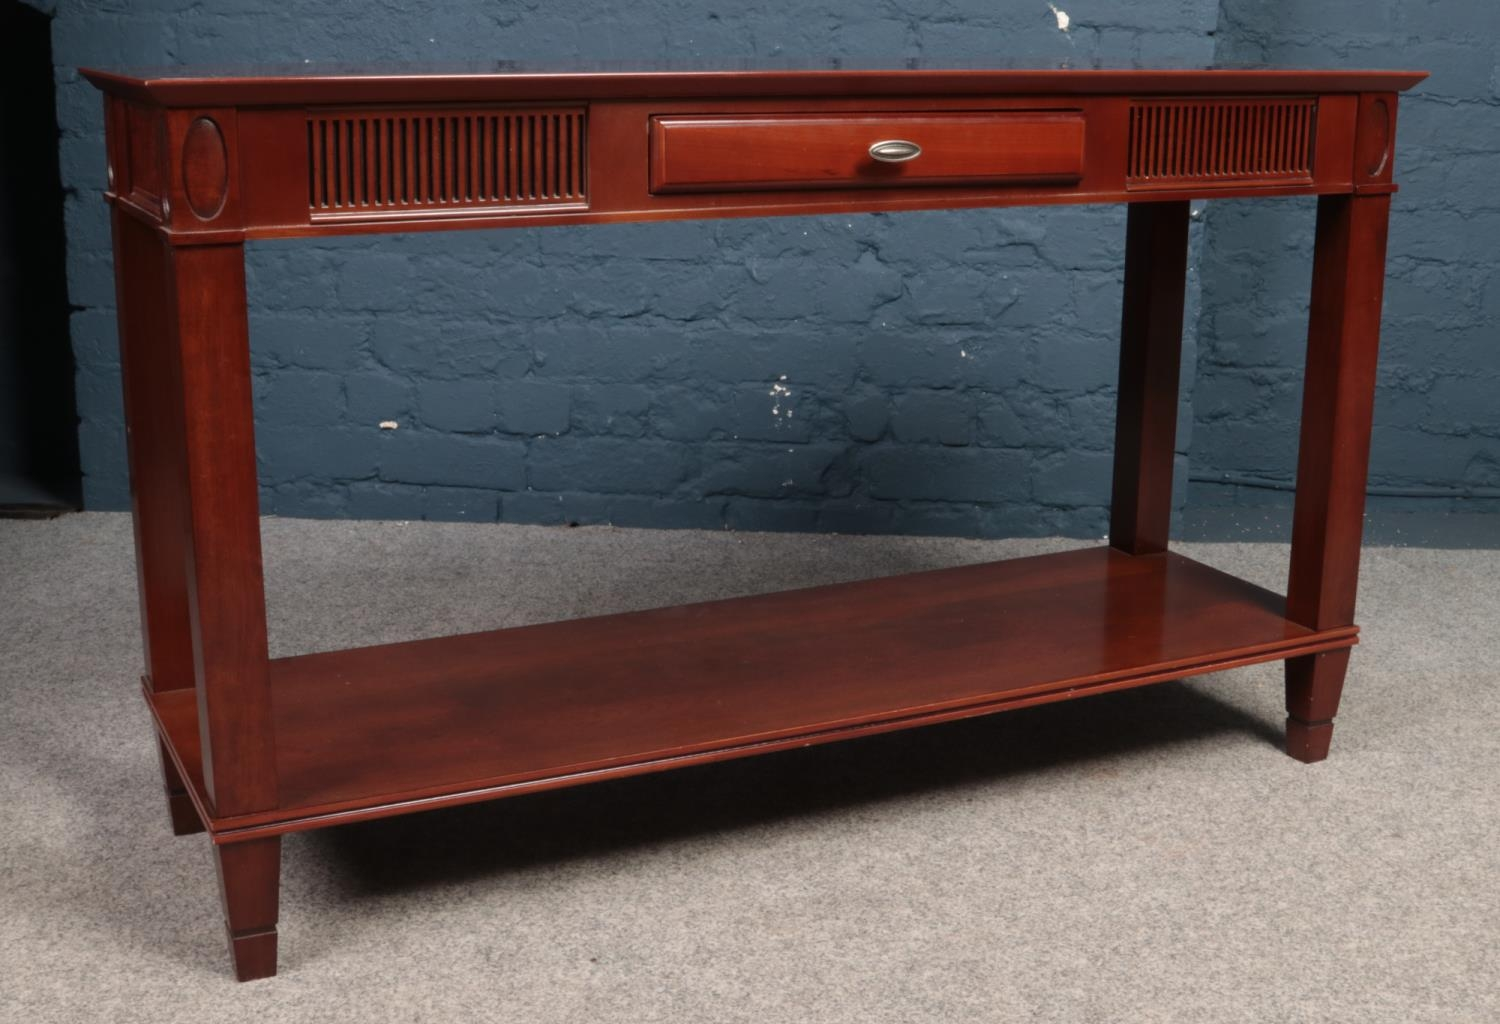 A Mahogany console table with central drawer. Made by (Theseira). H:71.5cm, W:120cm, Condition good.